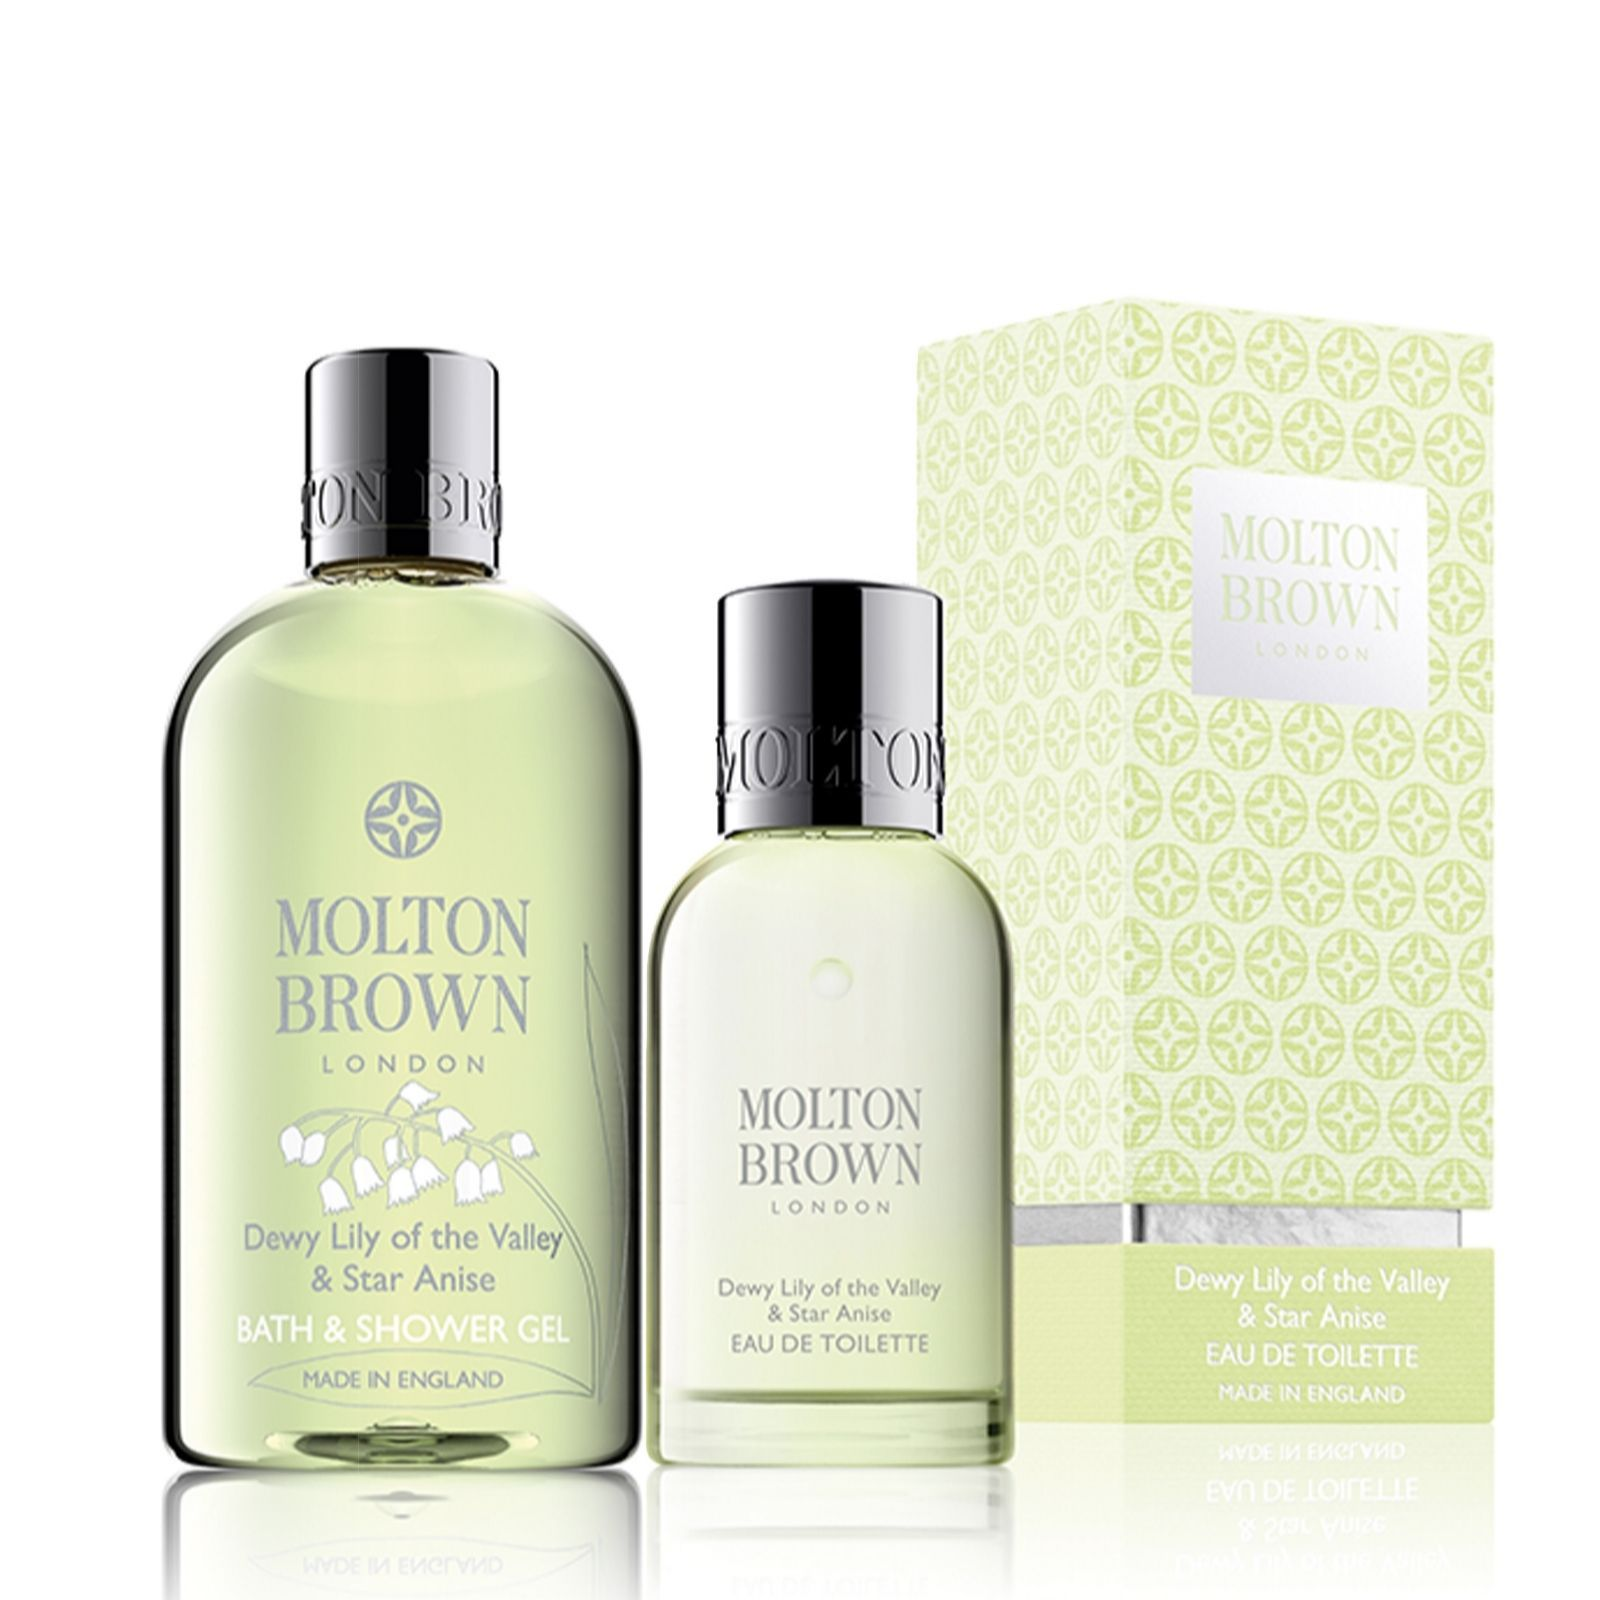 5d48f1a4409cb 228101 - Molton Brown Lily of the Valley Body Wash   Eau de Toilette QVC  Price  £41.50 + P P  £4.95 A beautiful Molton Brown duo including their Dewy  Lily ...